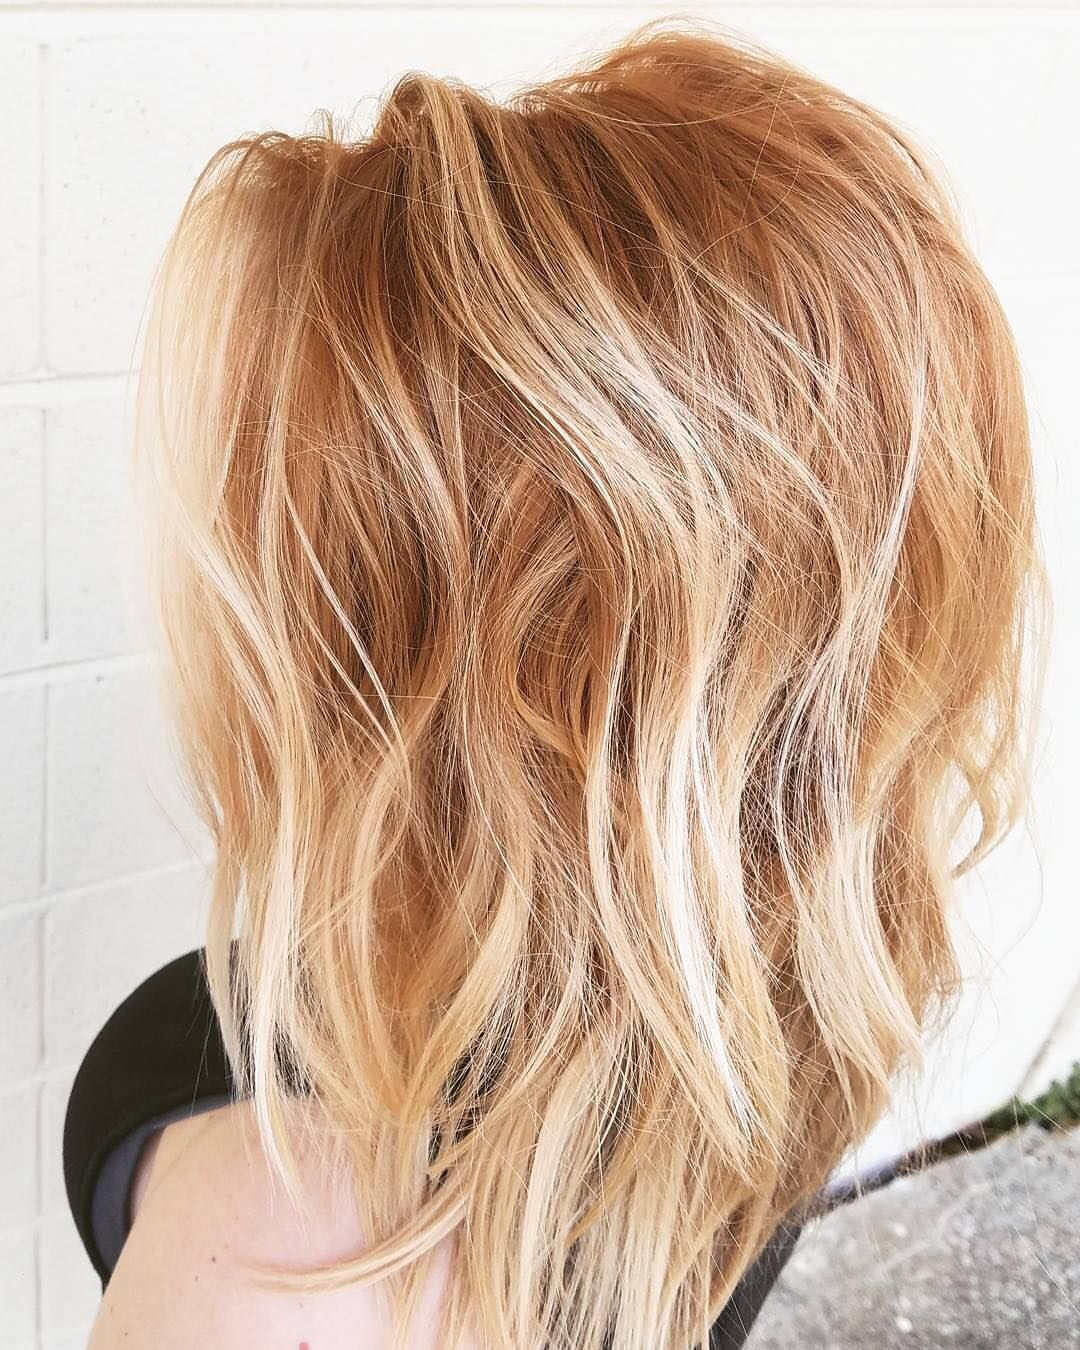 Tousled Strawberry Blonde Waves Huuur In 2019 Hair